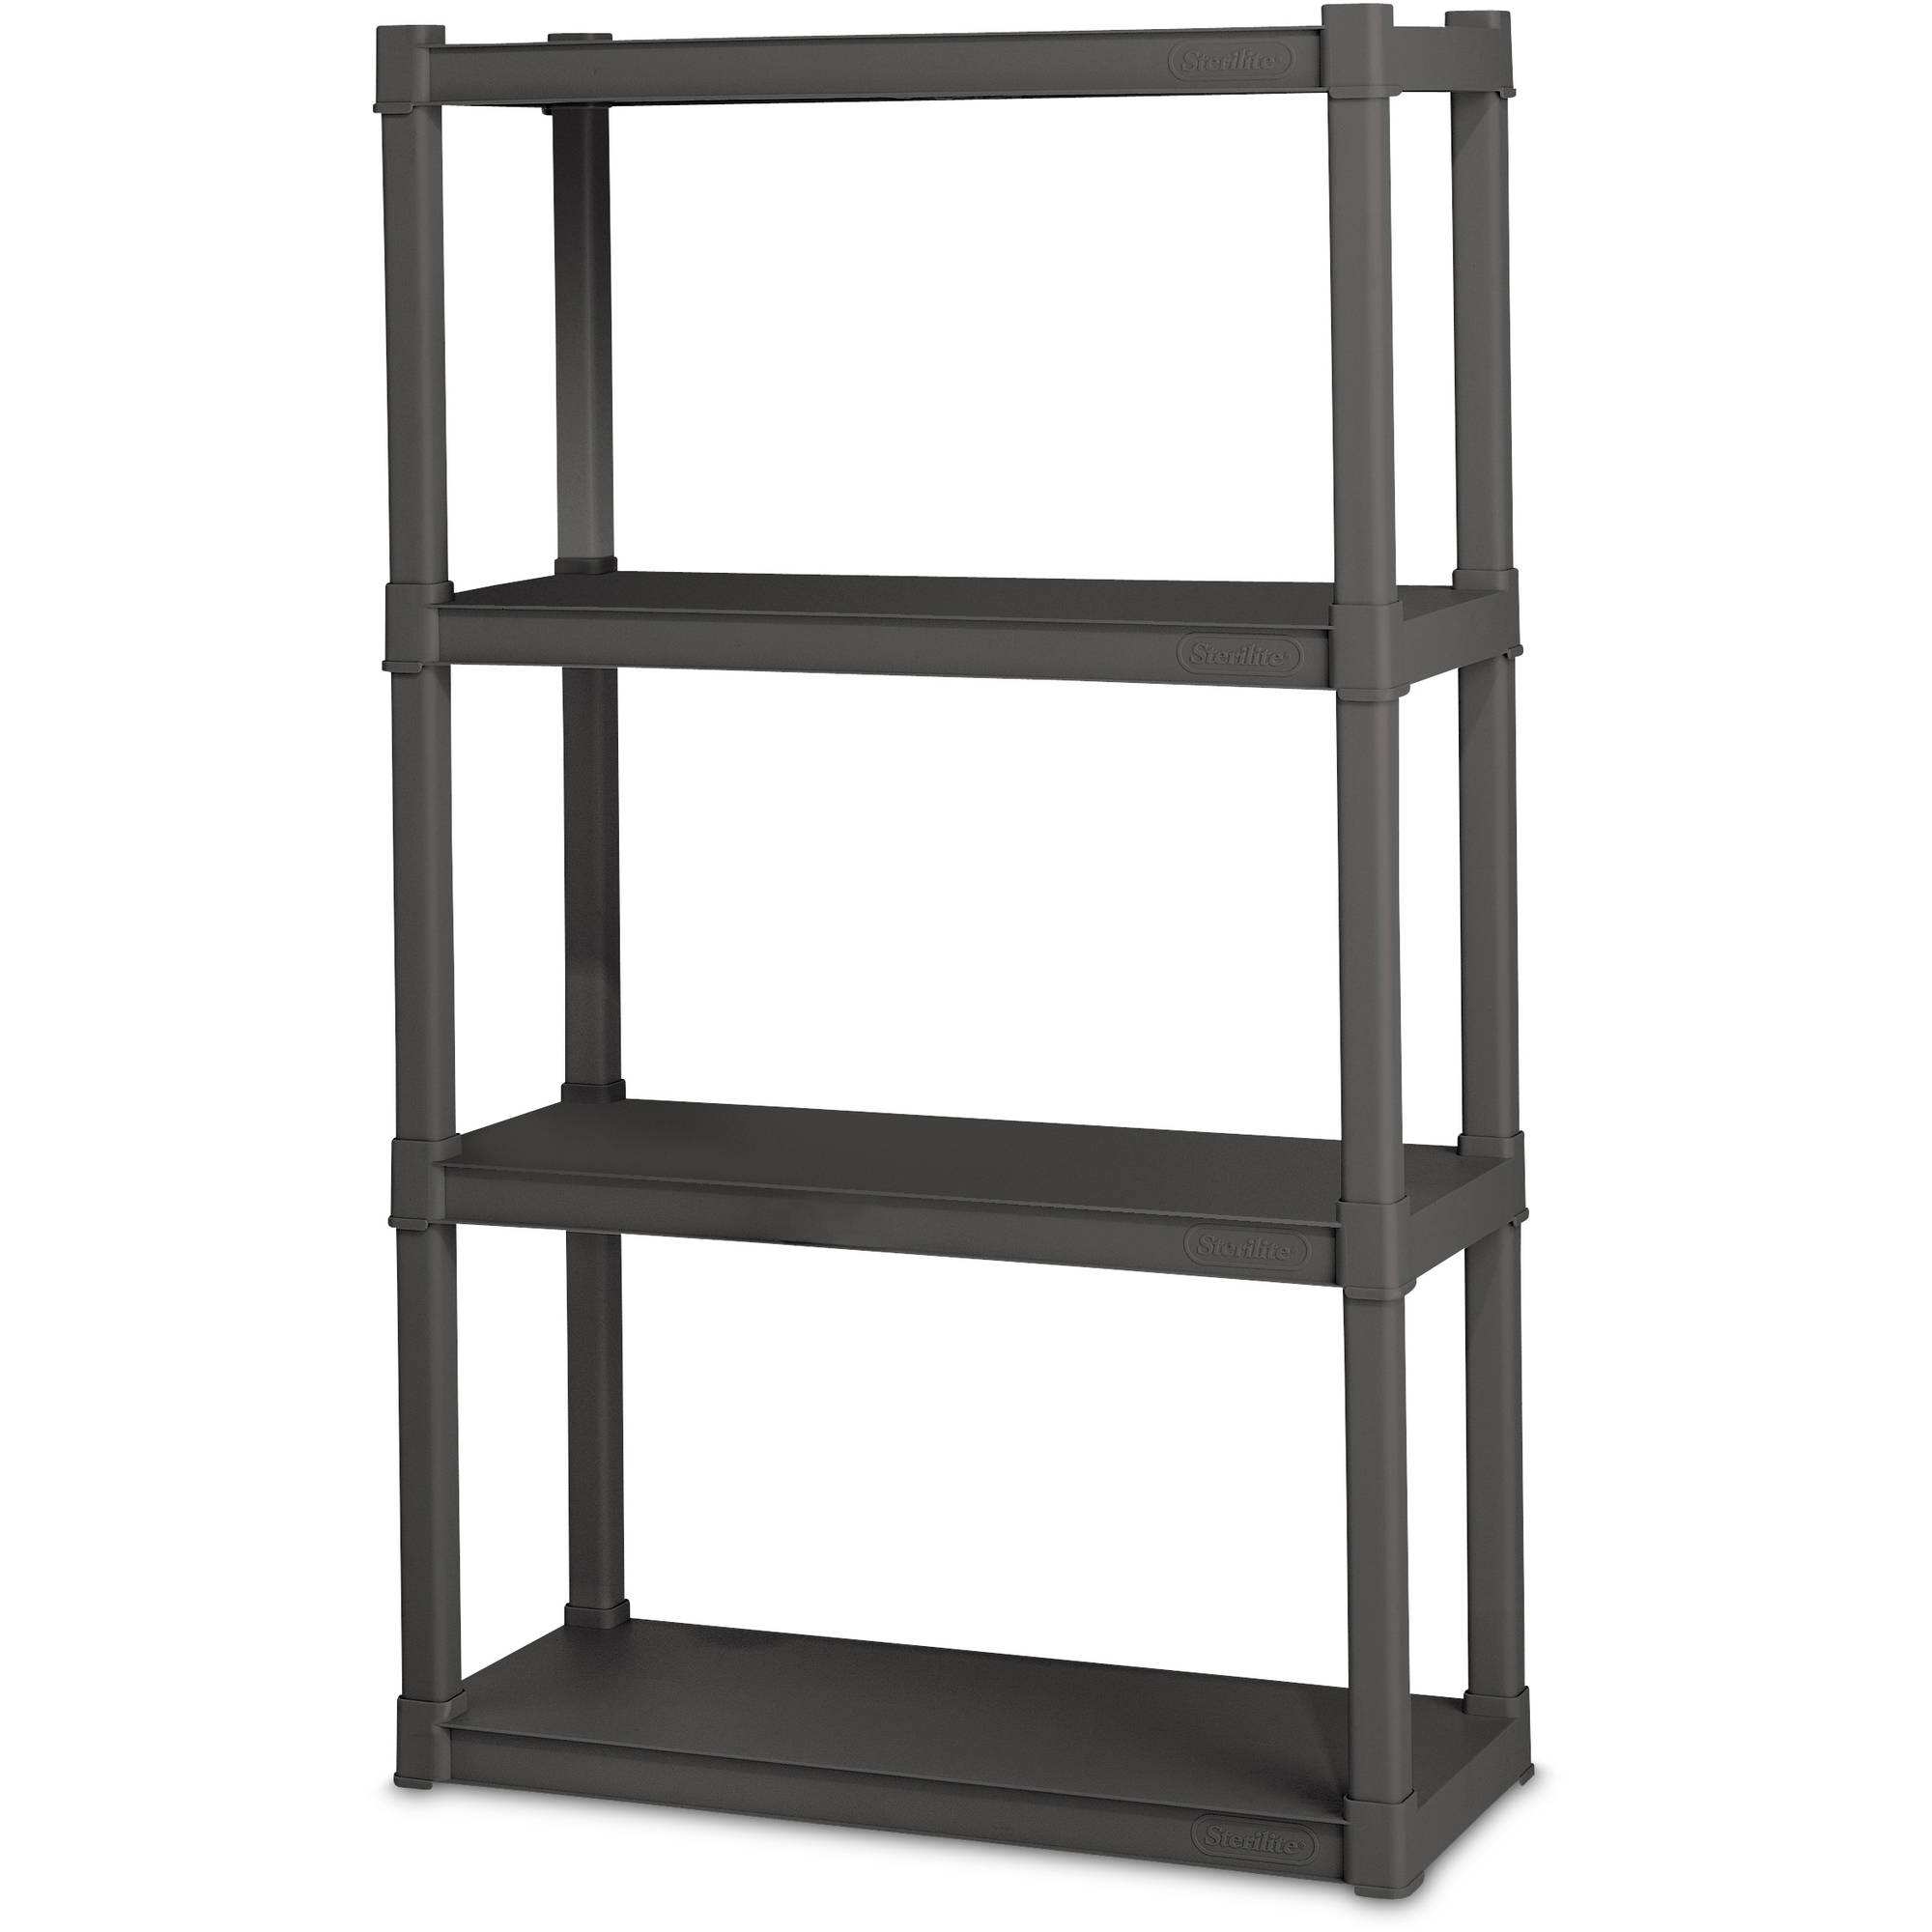 Sterilite 4 Shelf Unit, Flat Gray